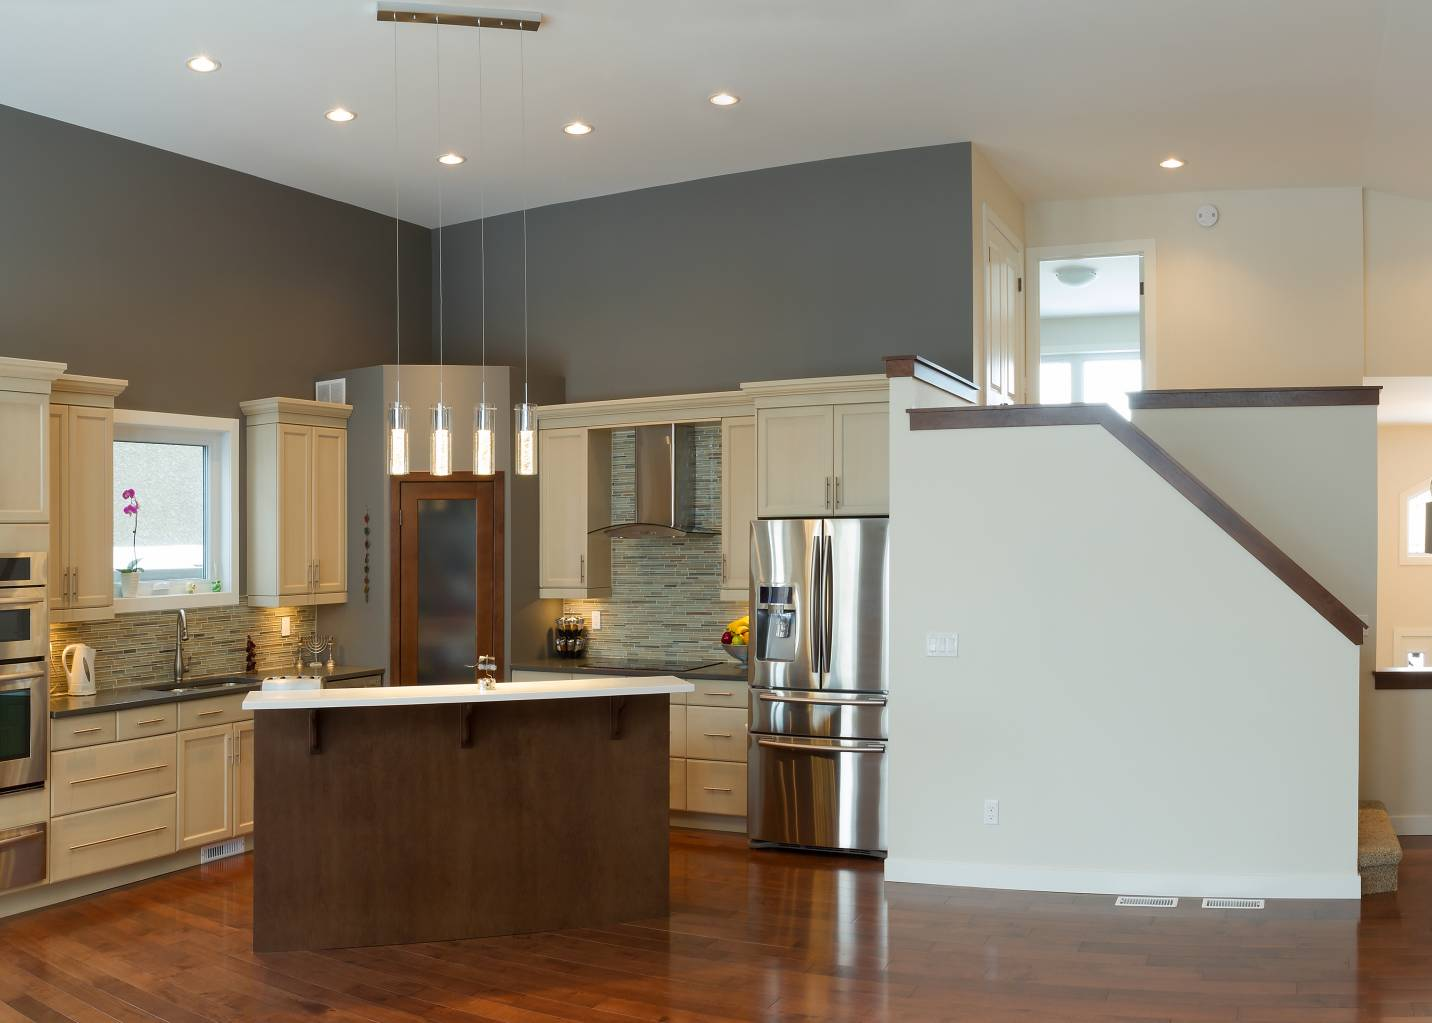 Painting A Room Two Colors What To Consider Professional